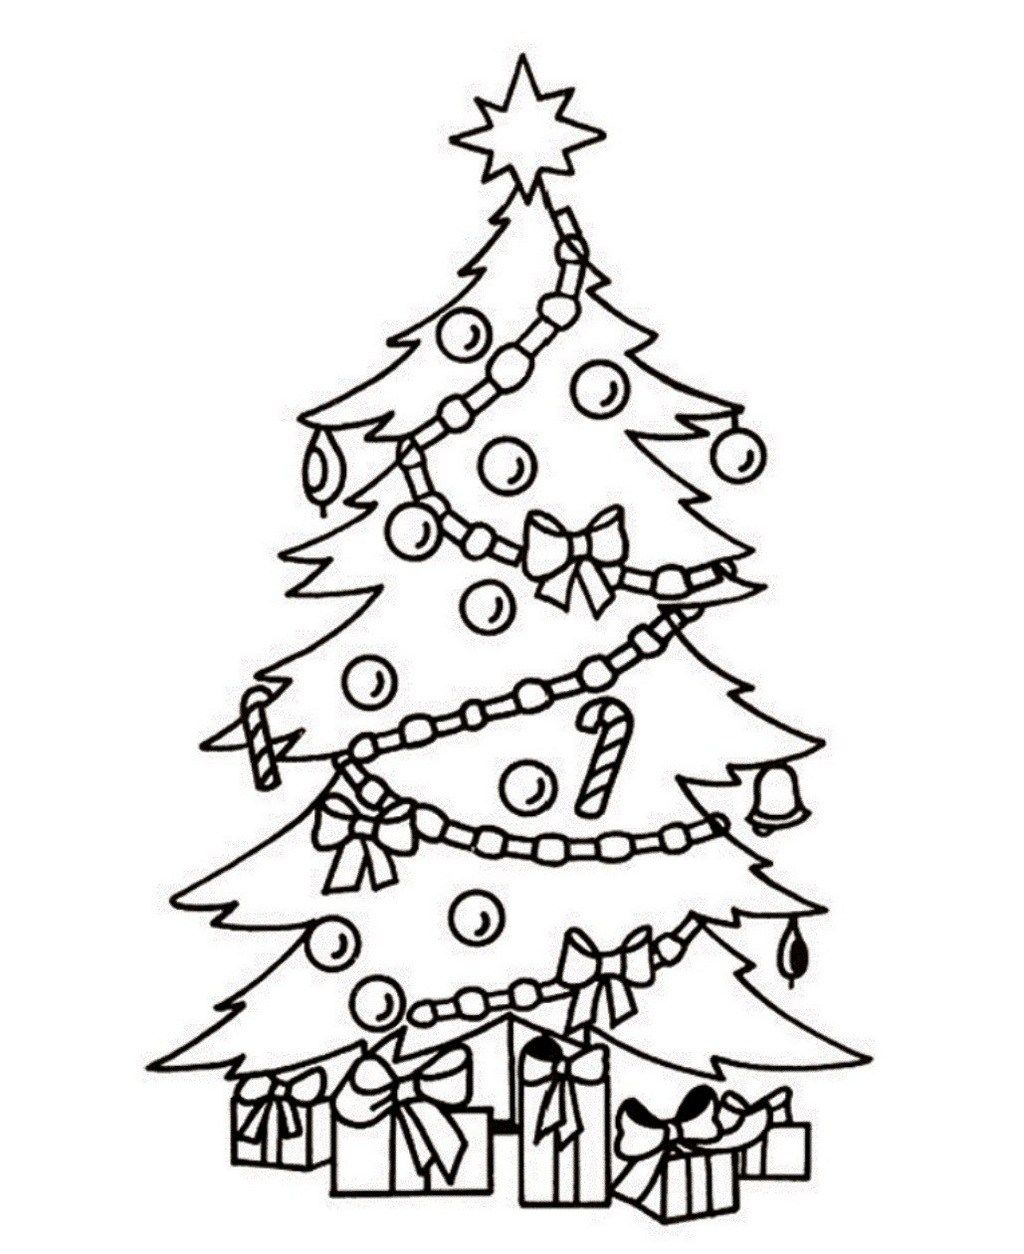 Magical Christmas Tree Coloring Pages Gift Christmas Tree Coloring Page Christmas Tree Drawing Tree Coloring Page